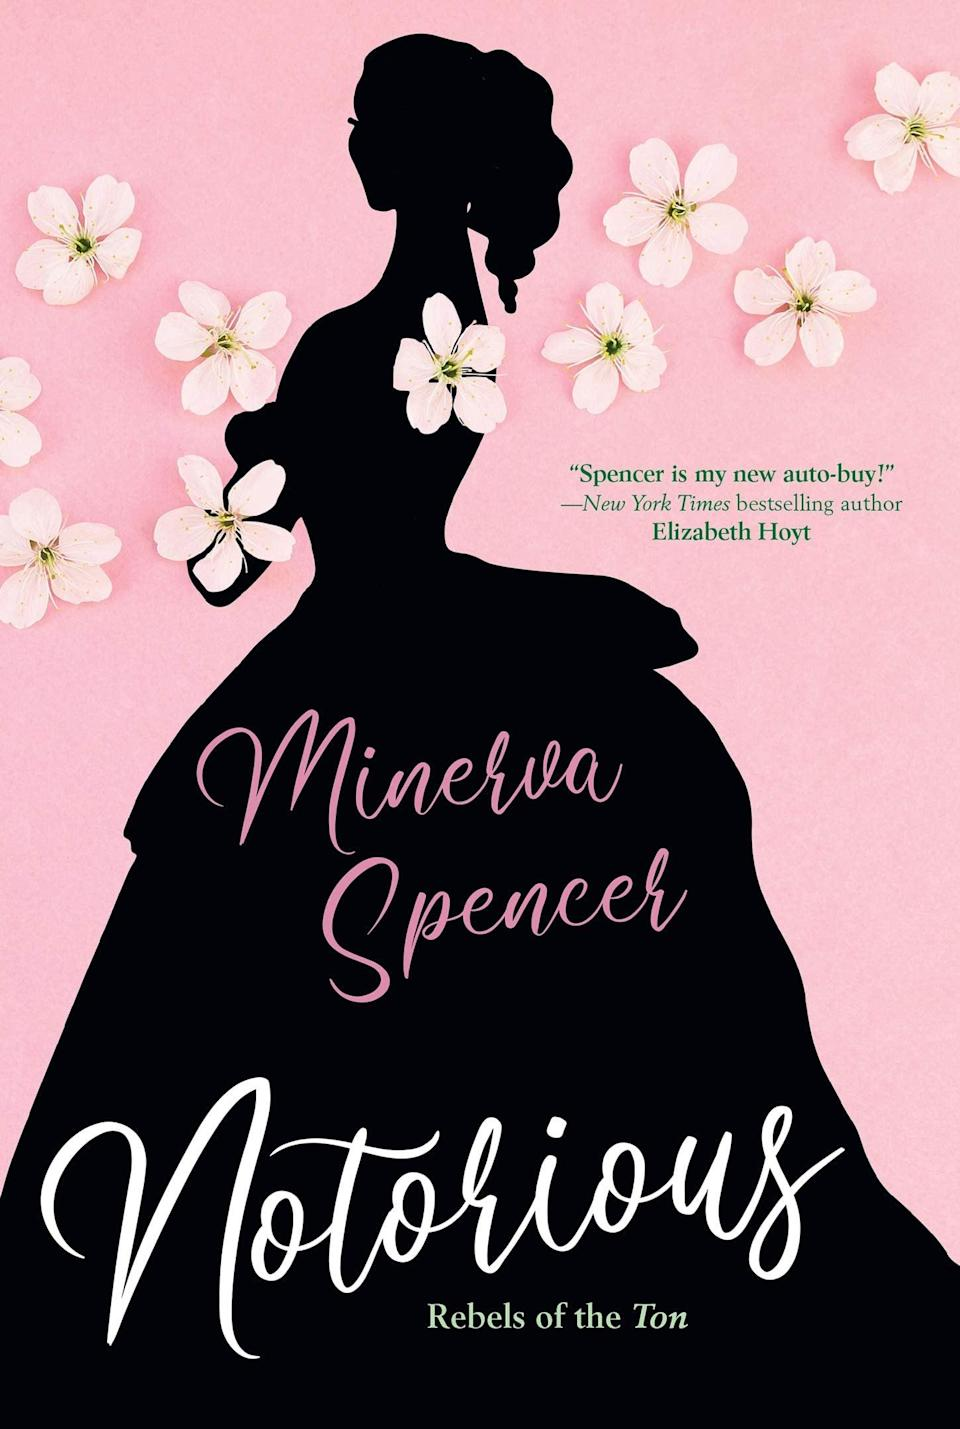 <p>There's nothing convenient about the marriage between Drusilla Clare, a headstrong young woman who never wanted to marry, and Gabriel, a rake who only proposes out of obligation. But thanks to Minerva Spencer's sparkling dialogue and ability to ramp up the sexual tension, the unconventional couple at the heart of <span><strong>Notorious</strong></span> is impossible not to love. </p> <p><em>Out Nov. 24</em></p>